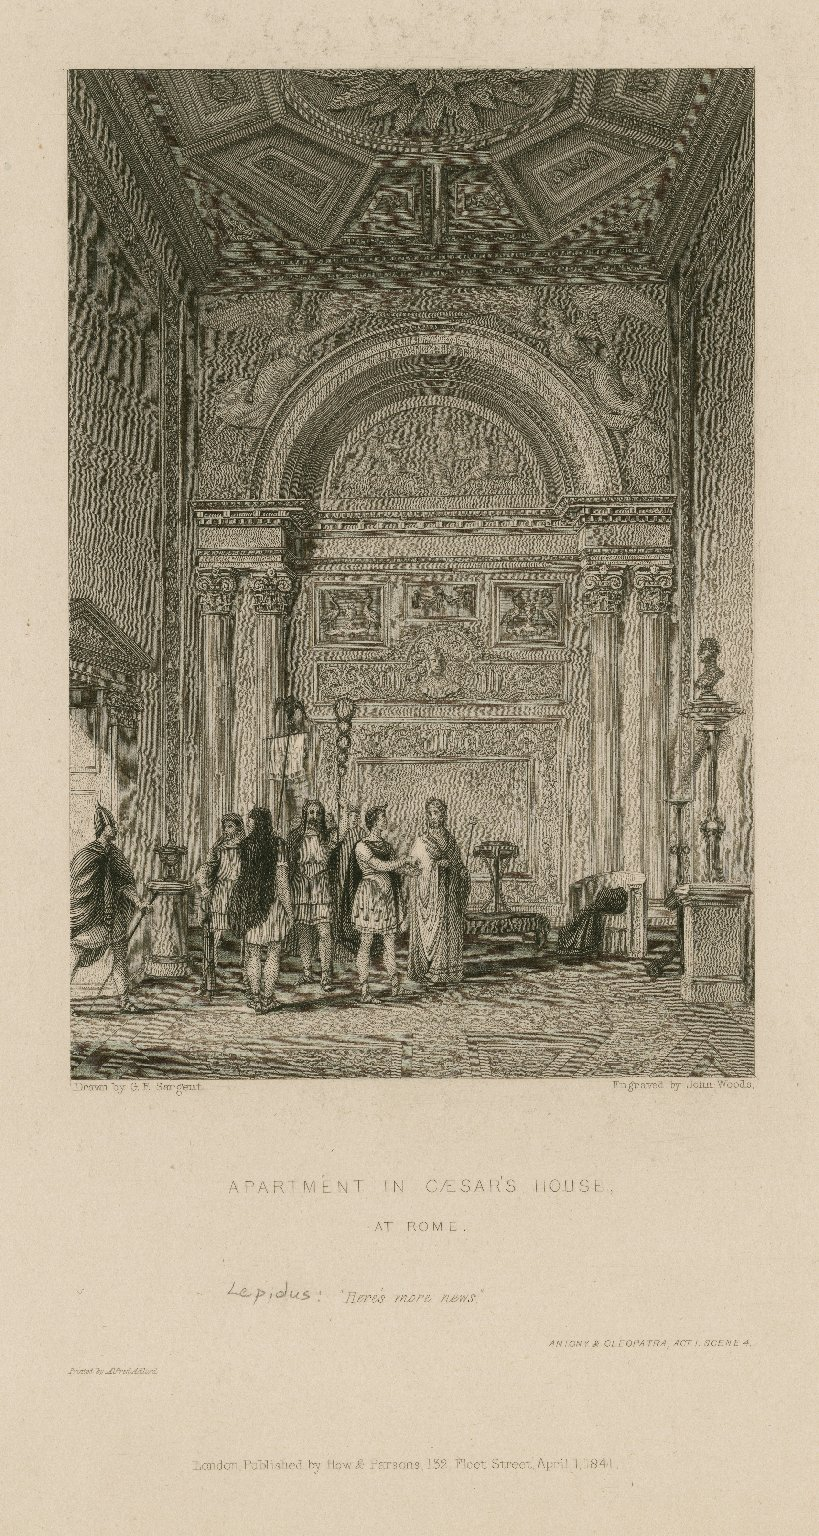 Apartment in Caesar's house at Rome, [Lepidus:] Here's more news, Antony and Cleopatra, act 1, scene 4 [graphic] / drawn by G.F. Sargent ; engraved by John Woods.